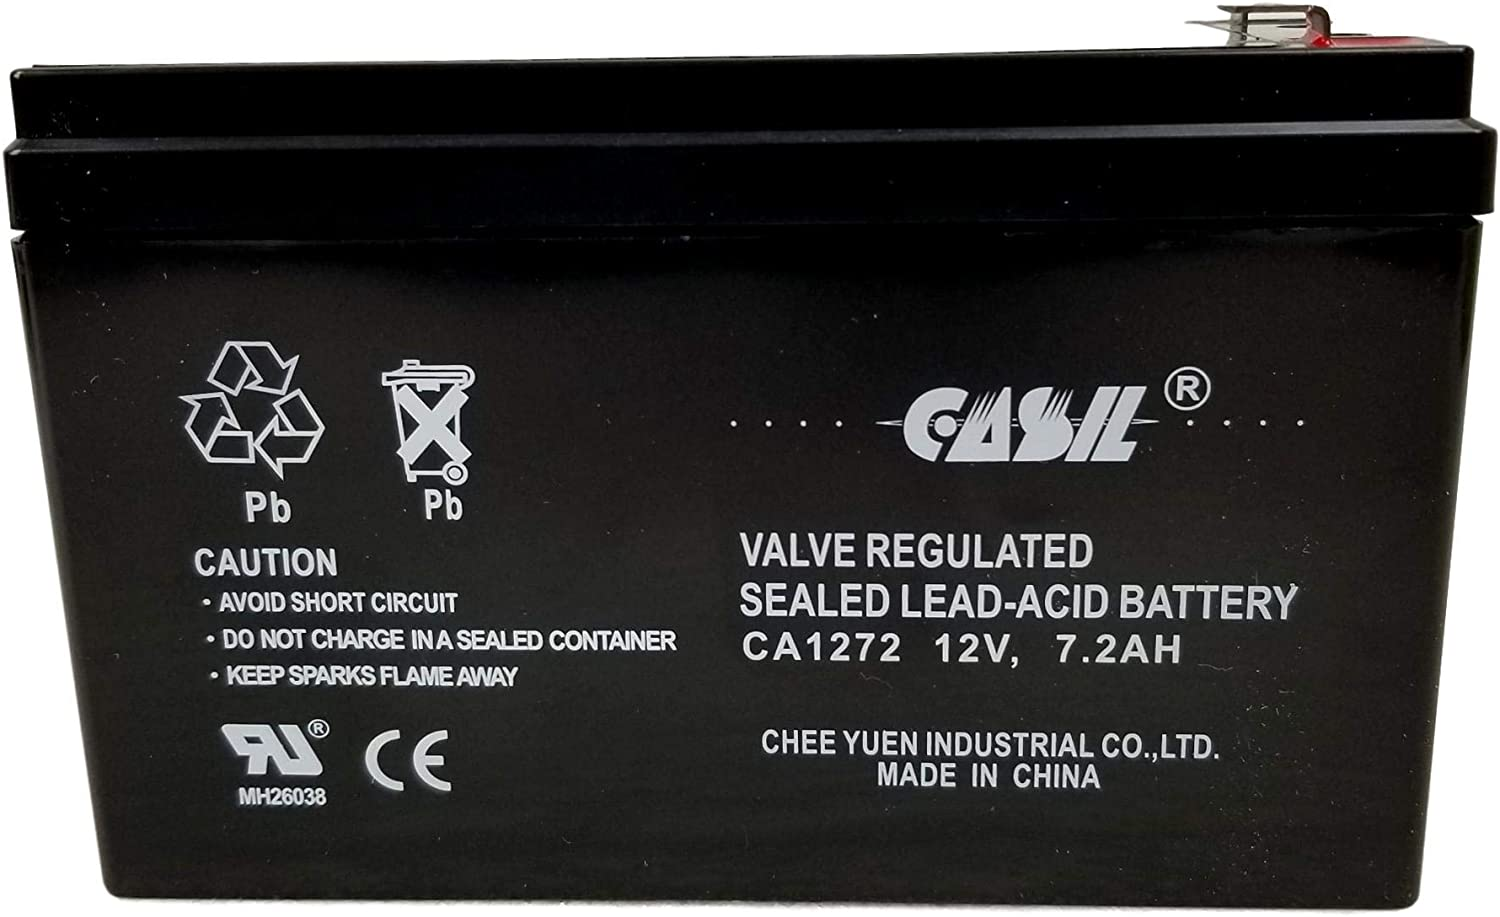 UPSonic Station 2021 model 2812V7.2AhReplacement Louisville-Jefferson County Mall Battery Casil by CA1272